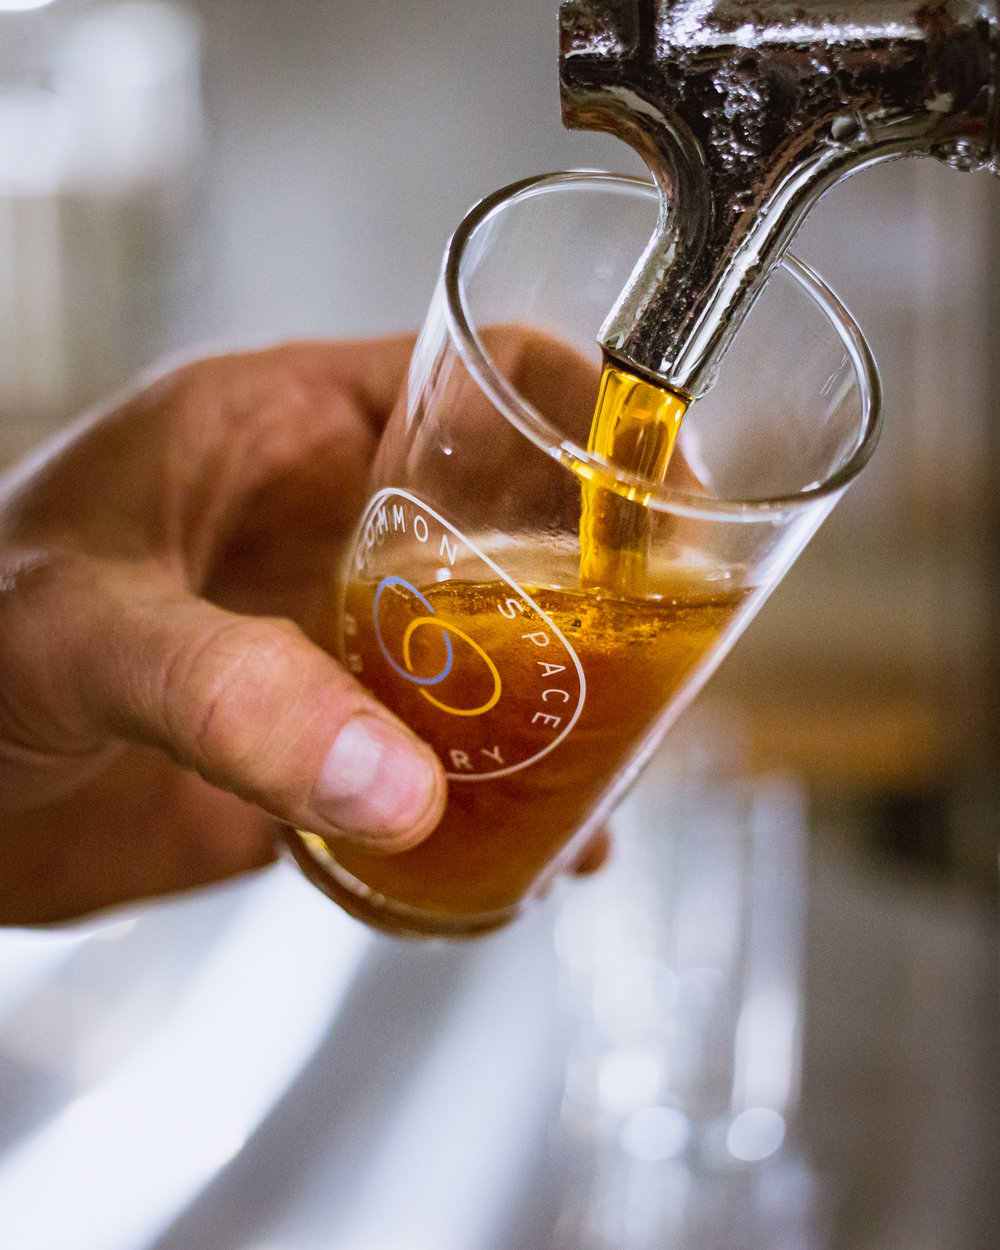 S4E1 COMMON SPACE BREWERY - Hawthorne, CA brewery Common Spaceis a company dedicated to bringing people together over great beer. Learn more about the team's mission and process by watching their episode below.@commonspacela